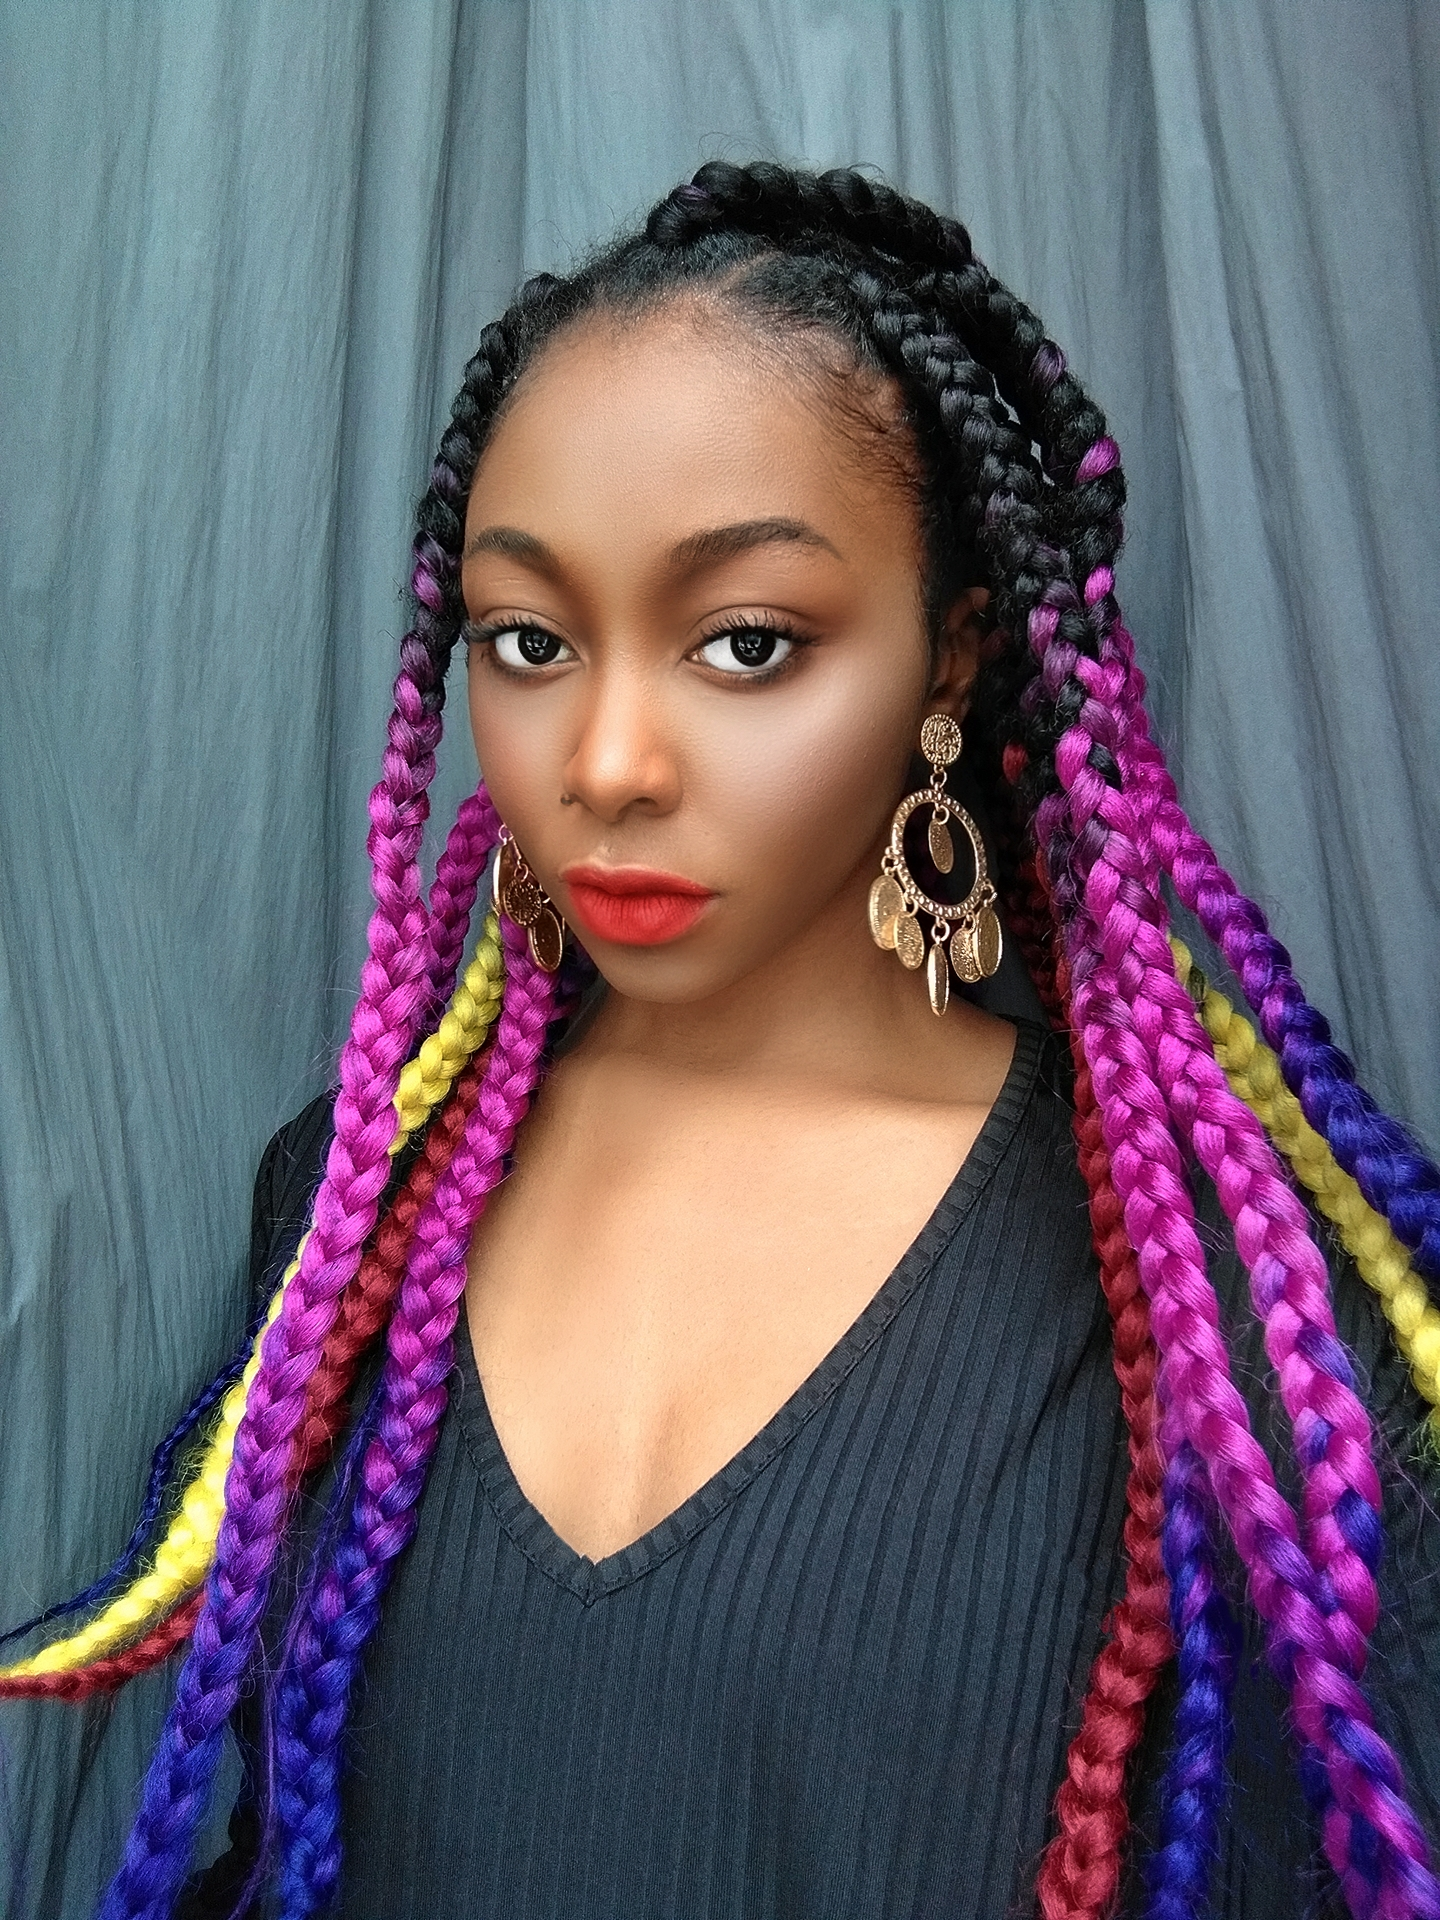 How to combine braid colors